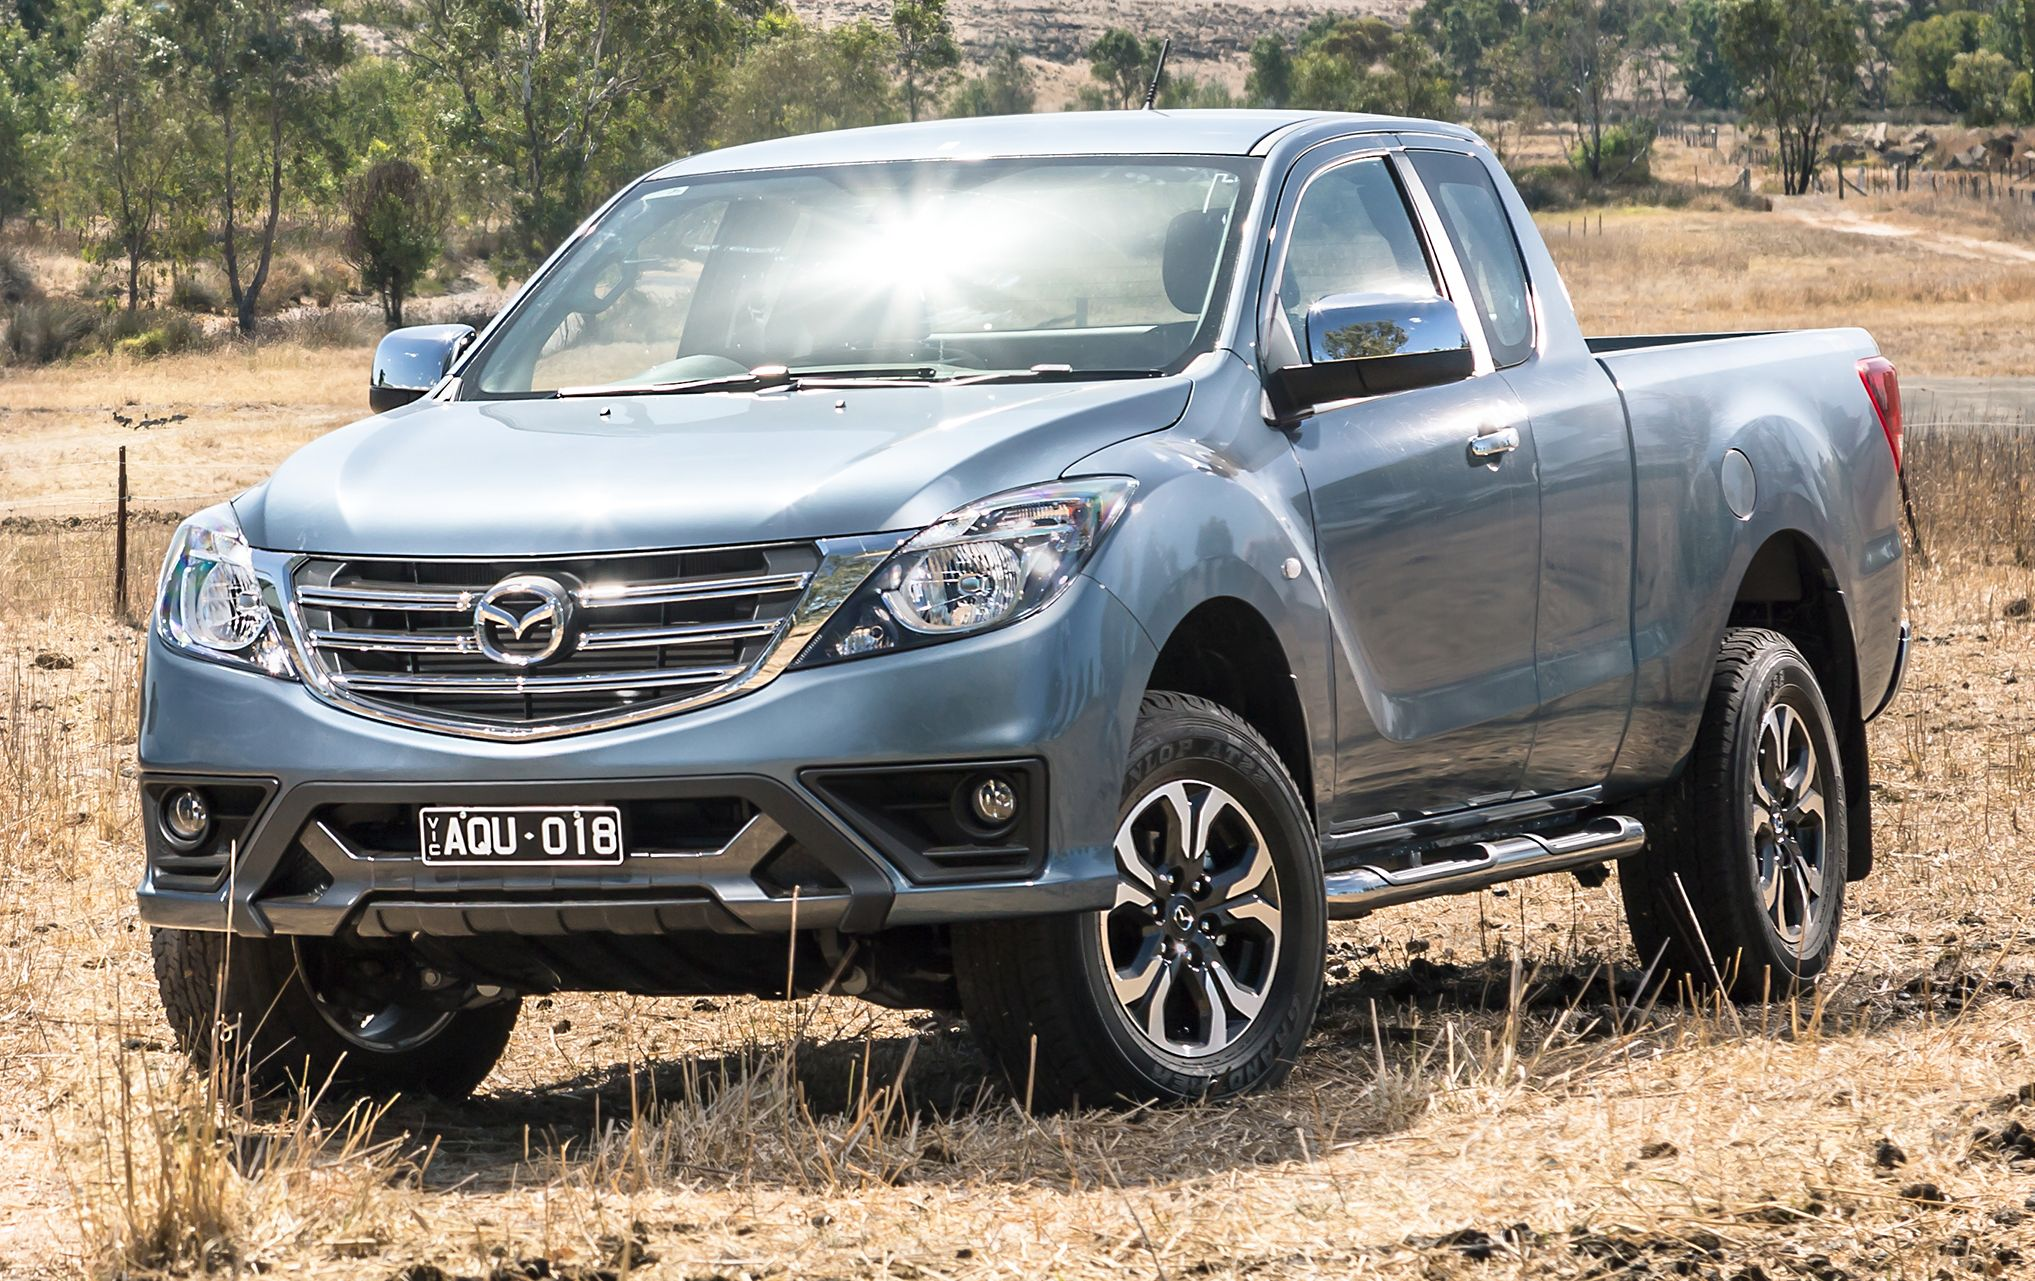 mazda bt 50 gets second facelift in australia apple carplay and android auto as standard from. Black Bedroom Furniture Sets. Home Design Ideas